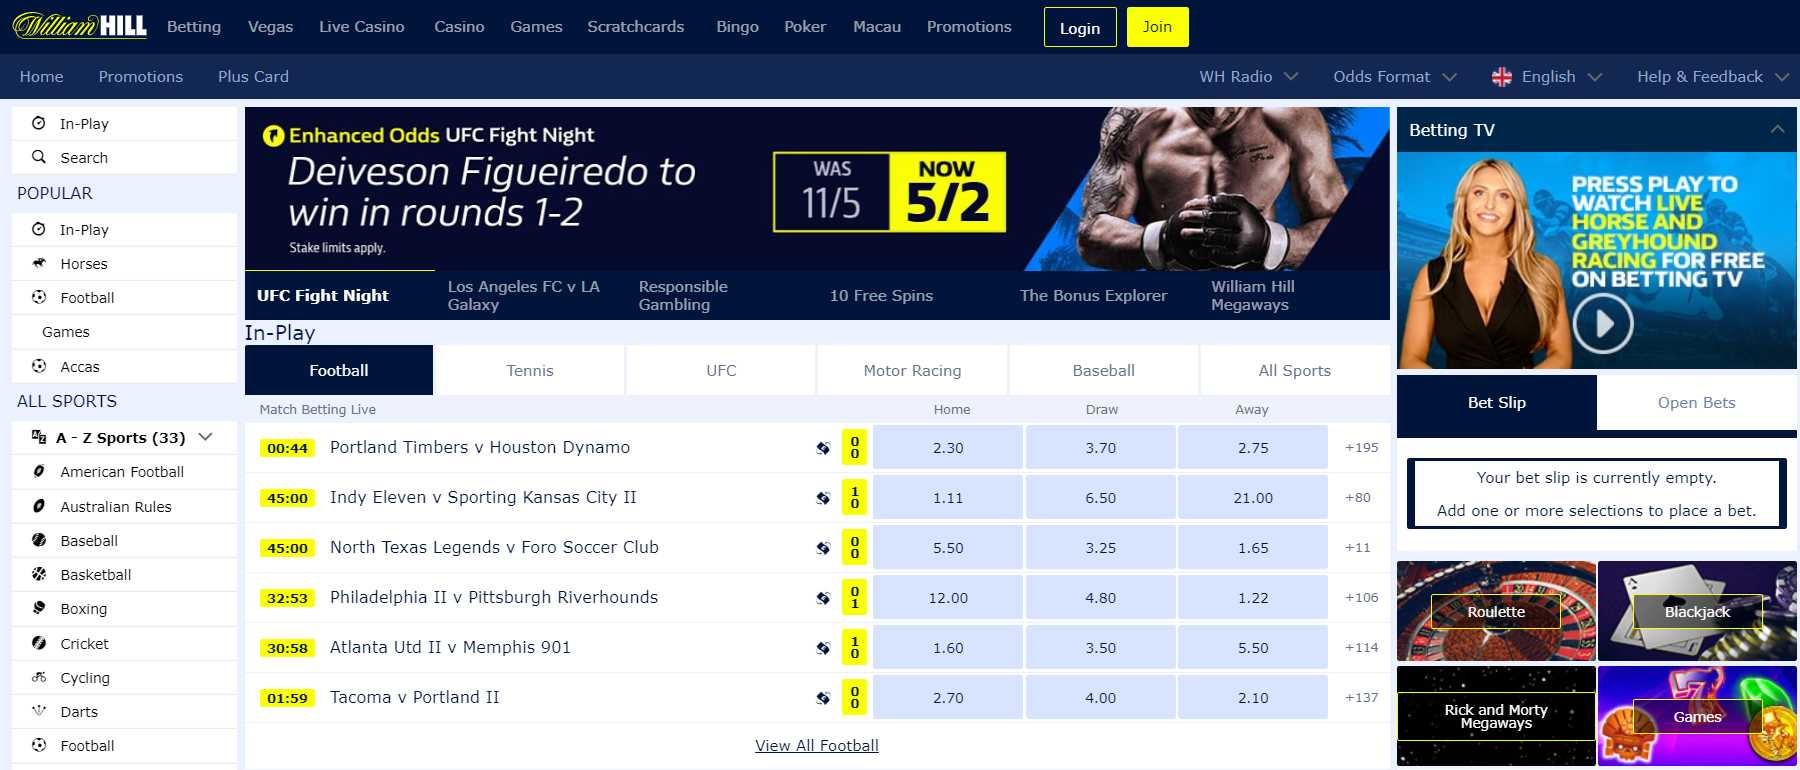 William Hill betting offers for in-play bets to consider now